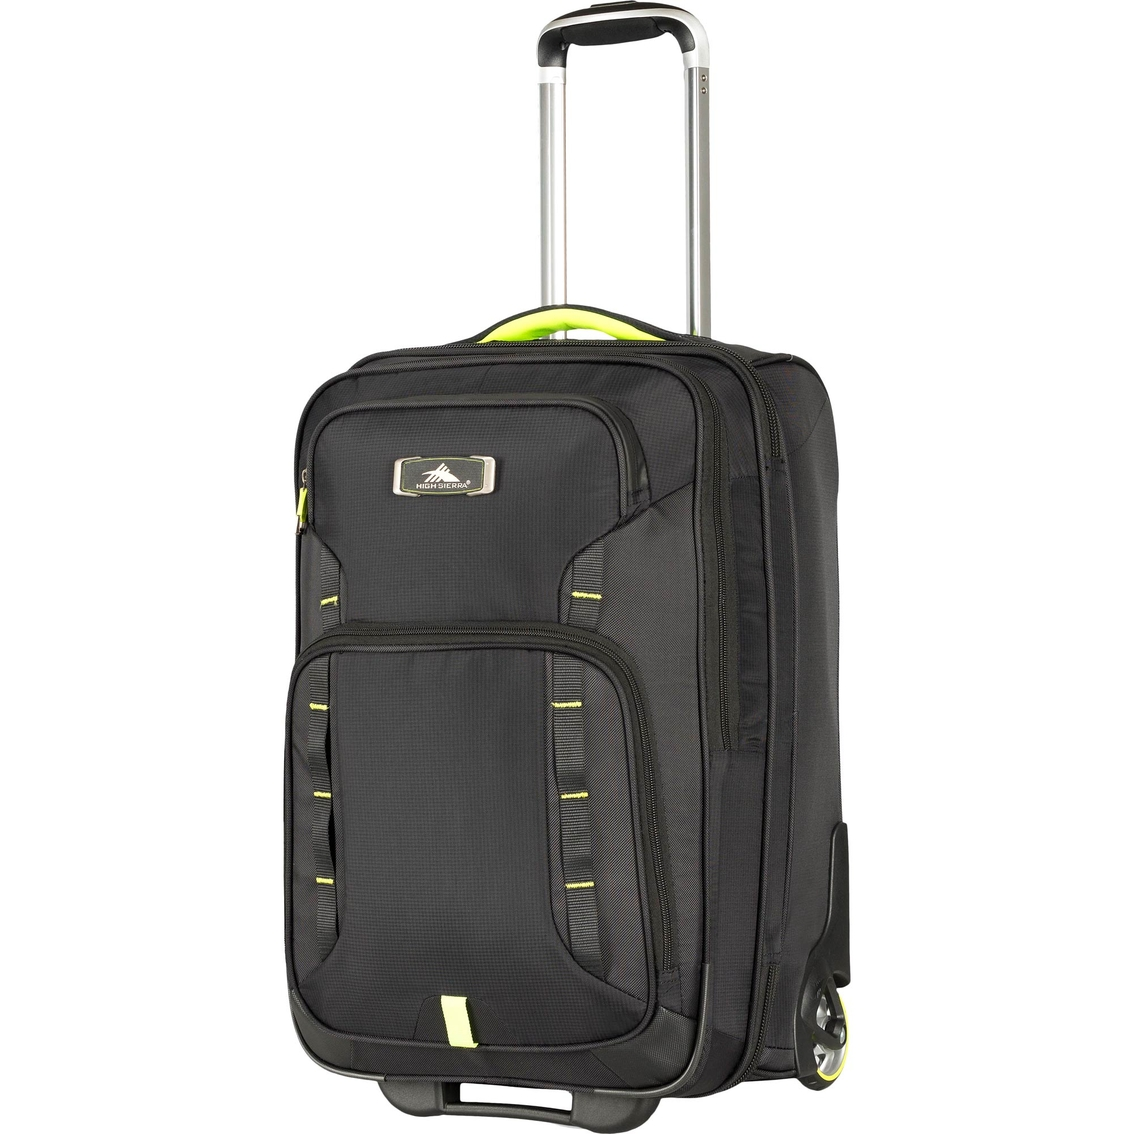 eb30a81686e9 High Sierra At8 Wheeled Carry-on With Pack N Go Backpack